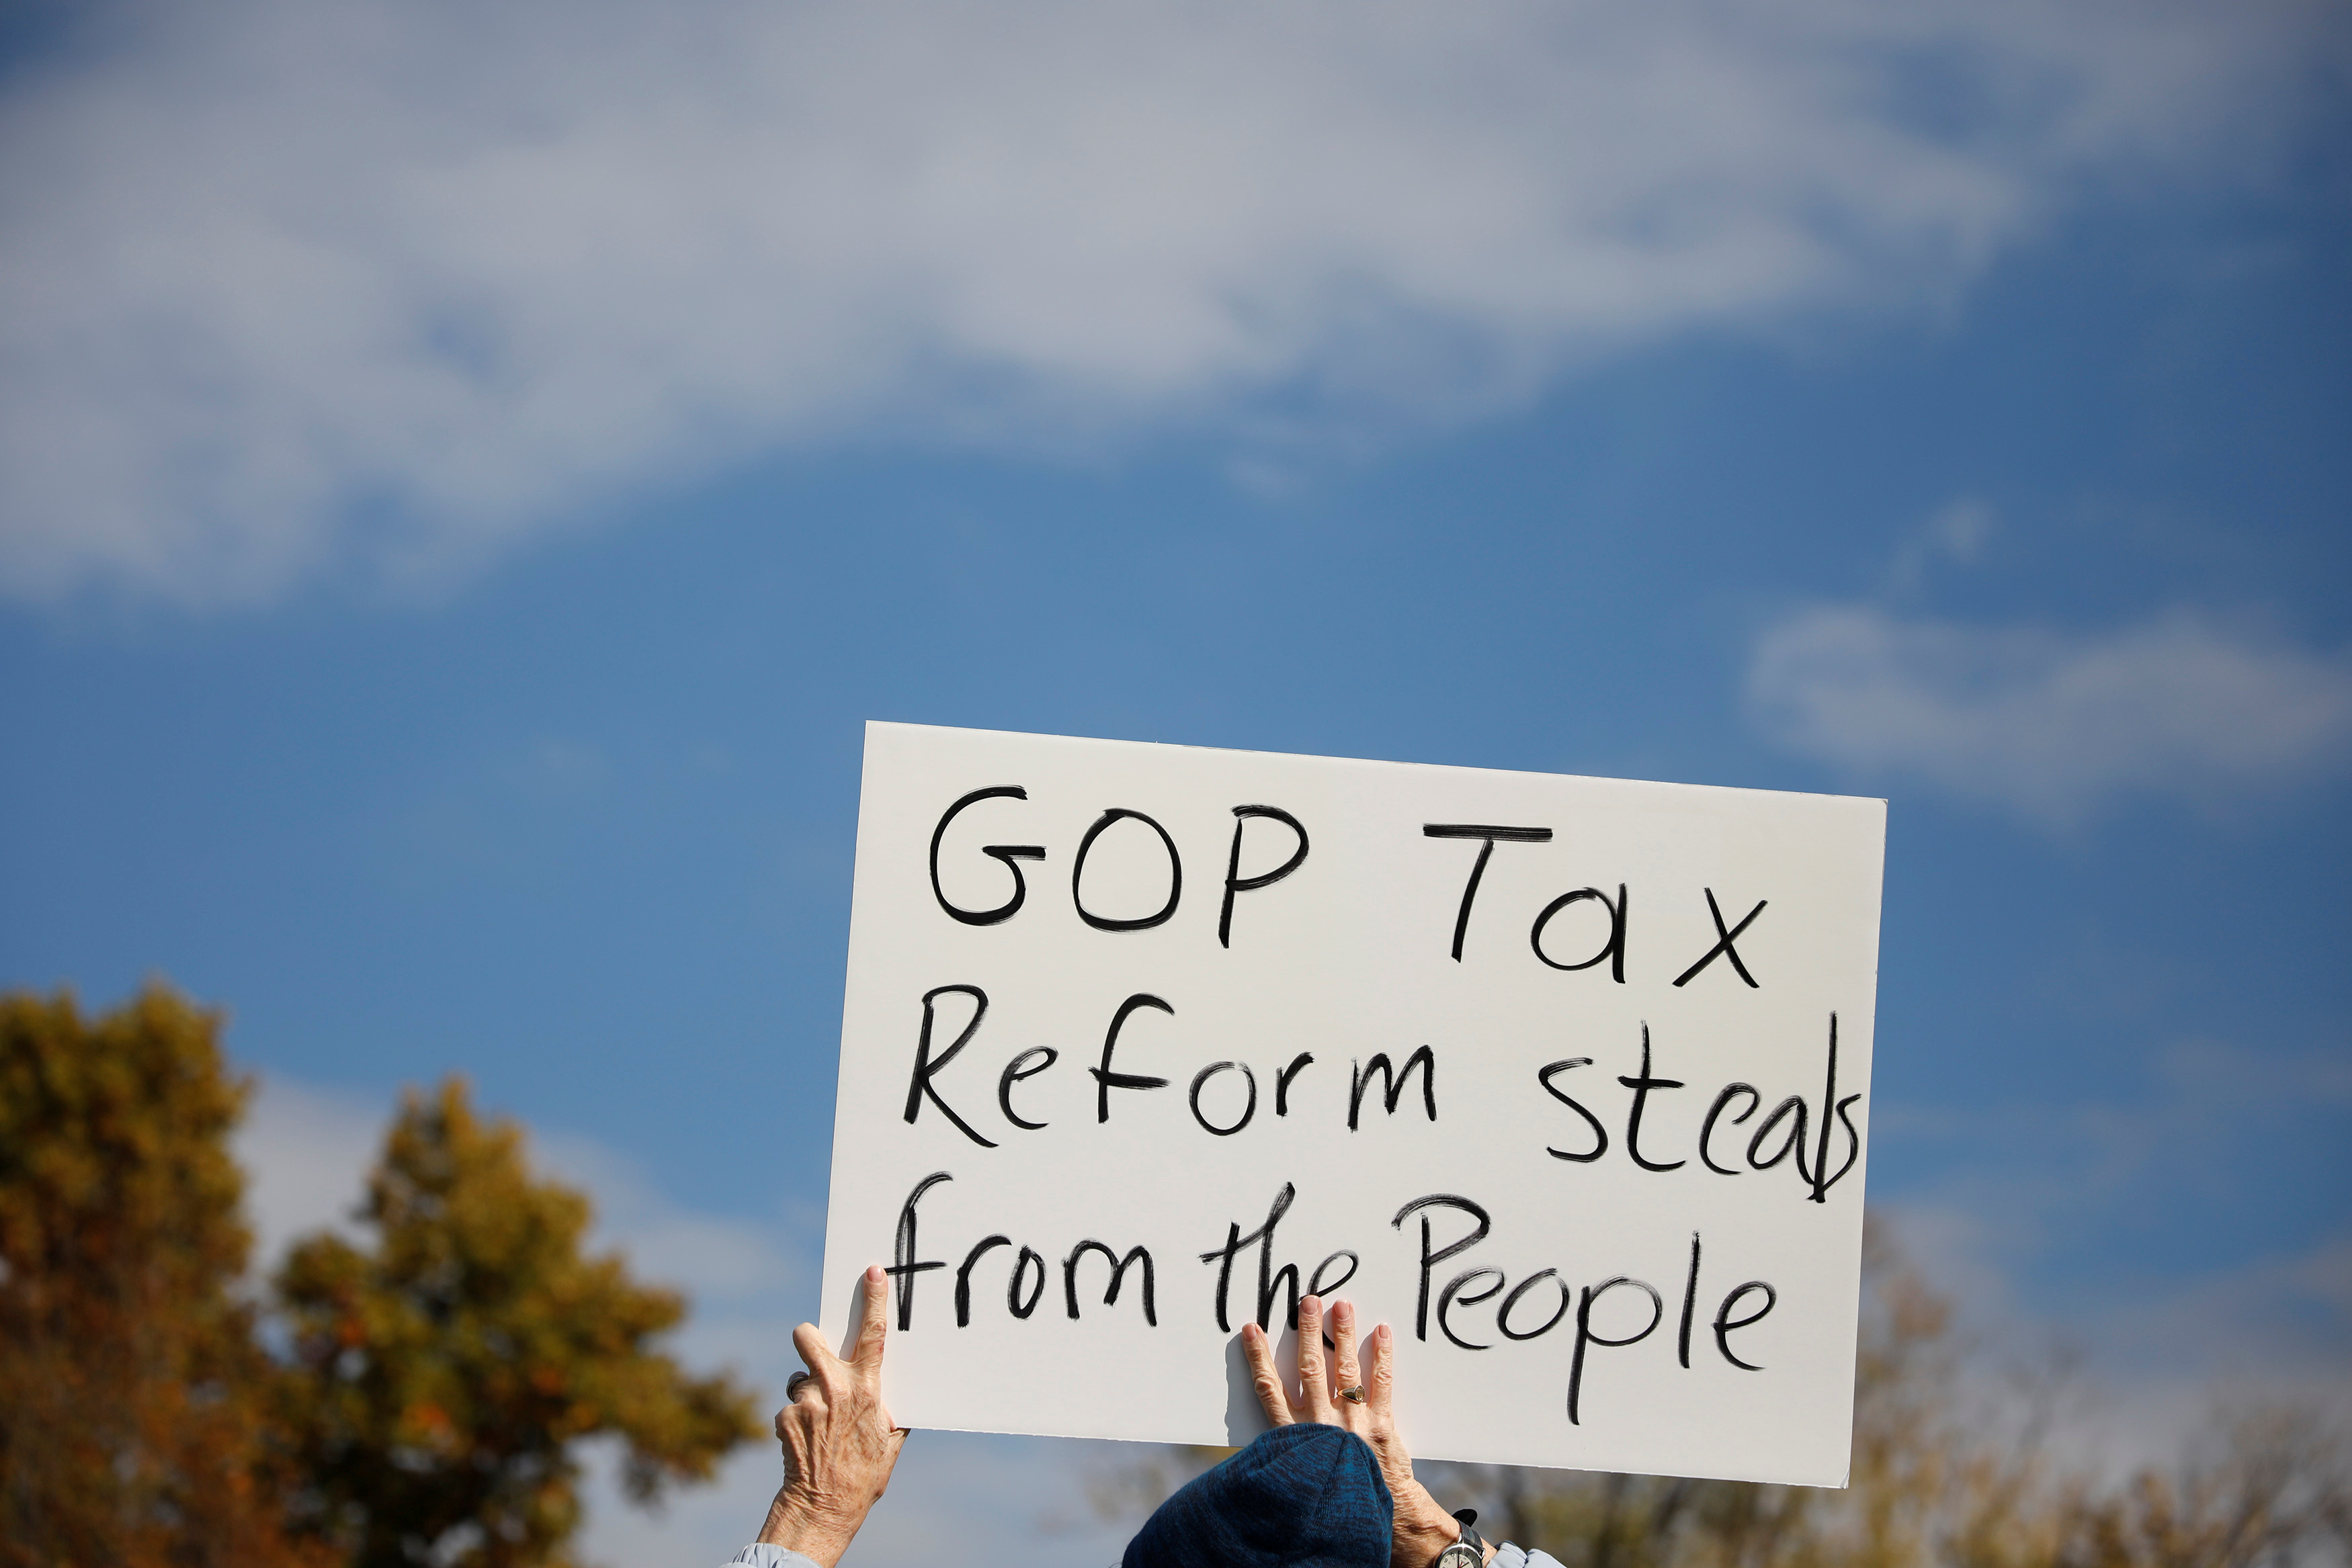 Tax Cuts and Jobs Act, tax cuts for the rich, corporate tax cuts